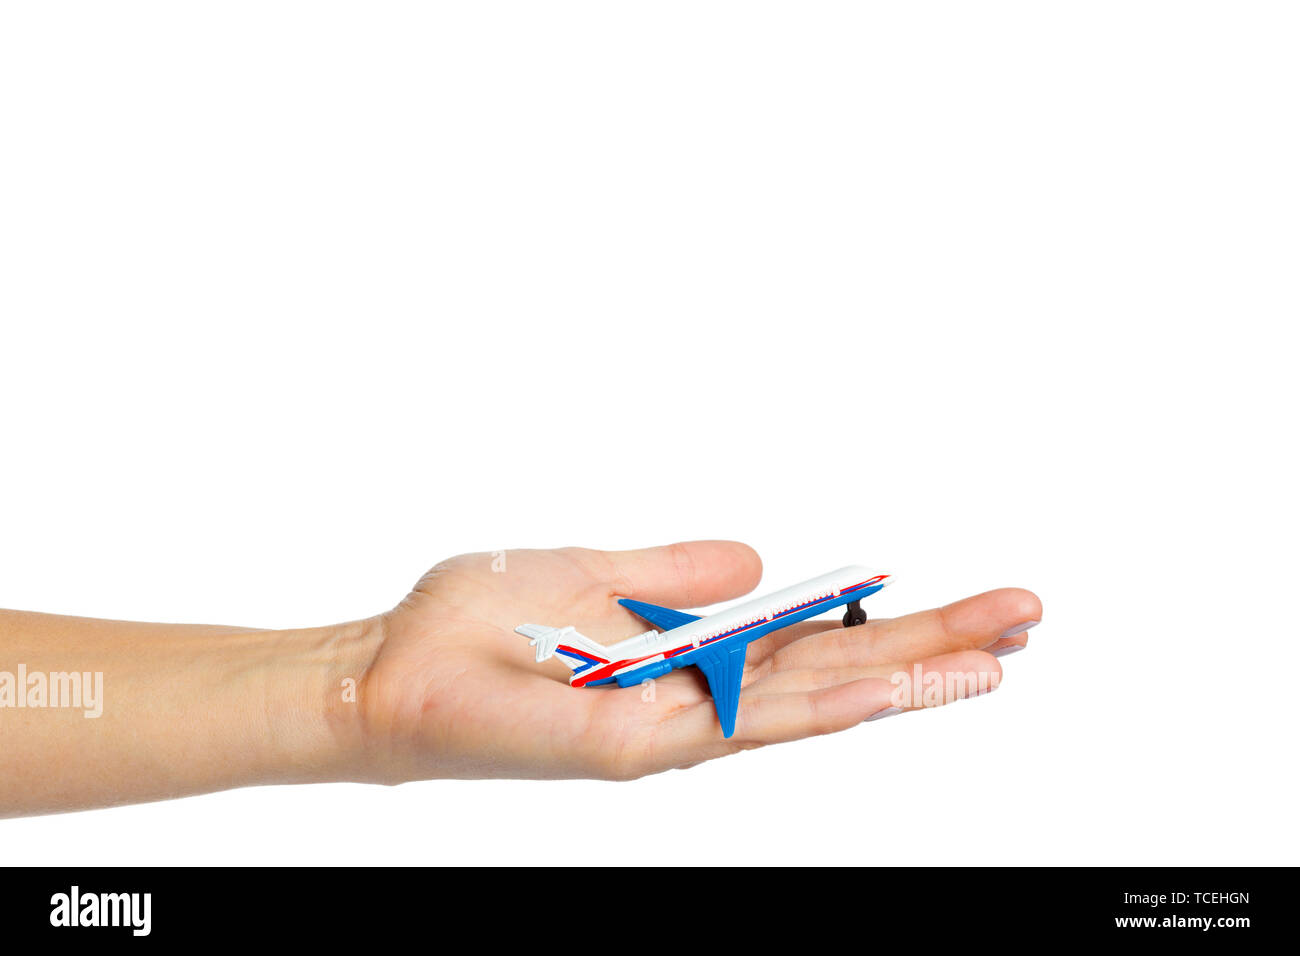 hand holding airplane toy model isolated on white background - Stock Image